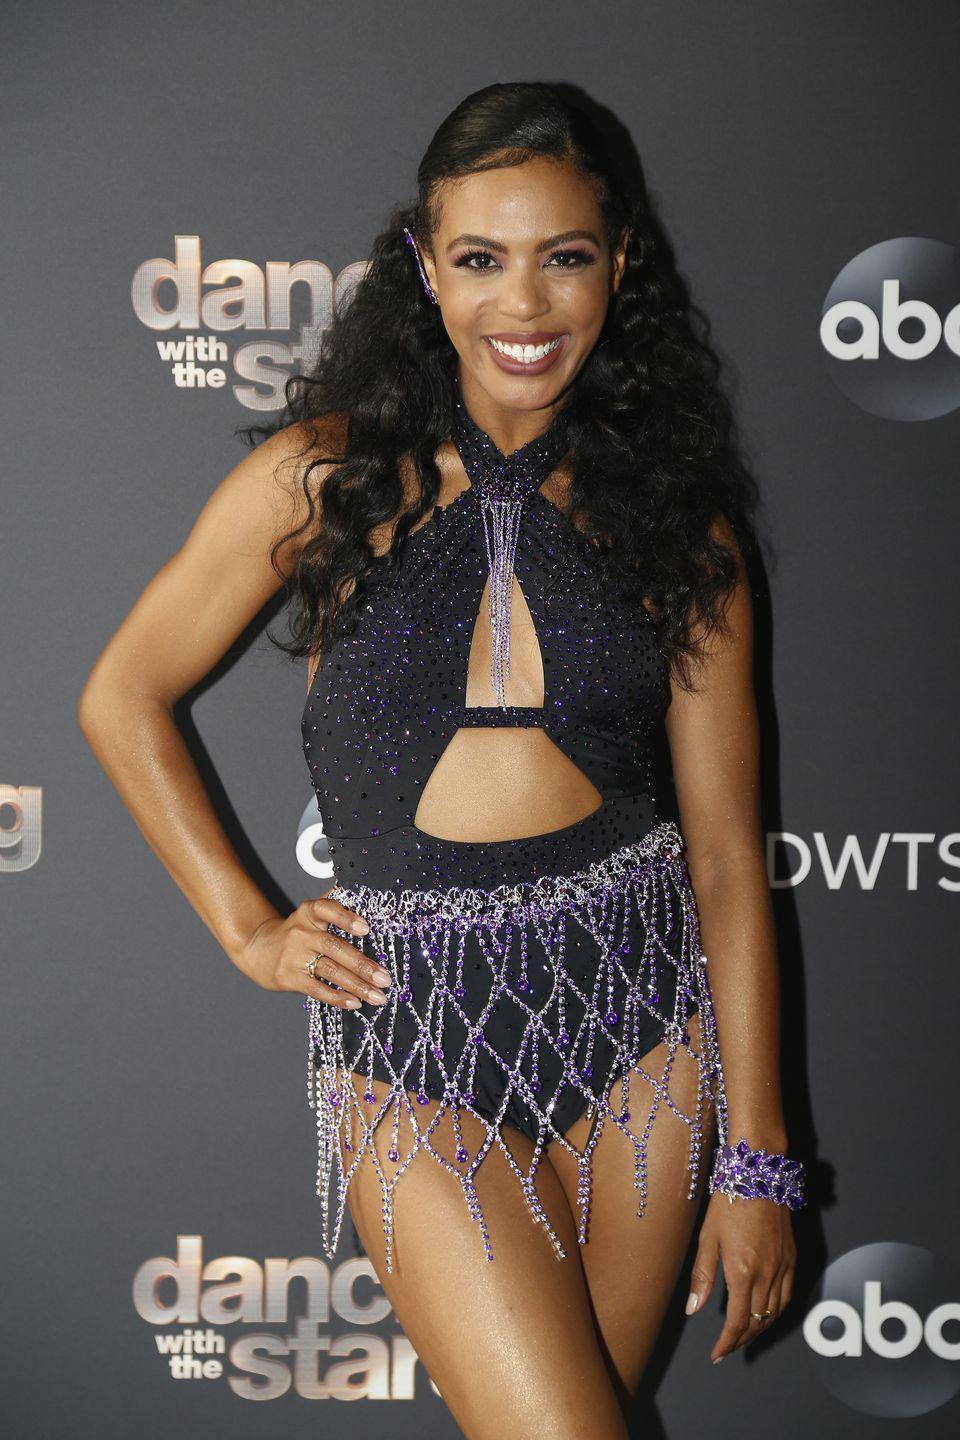 """<p><a href=""""https://www.womenshealthmag.com/life/a33893418/britt-stewart-dancing-with-the-stars/"""" rel=""""nofollow noopener"""" target=""""_blank"""" data-ylk=""""slk:Britt is DWTS's first-ever Black female pro"""" class=""""link rapid-noclick-resp"""">Britt is<em> DWTS</em>'s first-ever Black female pro</a>. She's hardly new to the show, though. She was on """"troupe"""" for five seasons and also went on tour with the show. """"I'm just so grateful, so excited and over the moon, honestly. Ever since I found out, I just don't really know what to do with myself. So much excitement, so much emotion,"""" she told <em><a href=""""https://urldefense.com/v3/__https://www.etonline.com/dancing-with-the-stars-britt-stewart-reacts-to-being-the-first-black-female-pro-exclusive-151508__;!!Ivohdkk!1fog6xwaF5AhU7FQp5rPYPK9351qE5UJjMdj5FlWPKTUeC2VzpfkKzdShaovu-fnnbU$"""" rel=""""nofollow noopener"""" target=""""_blank"""" data-ylk=""""slk:ET"""" class=""""link rapid-noclick-resp"""">ET</a></em>.</p>"""